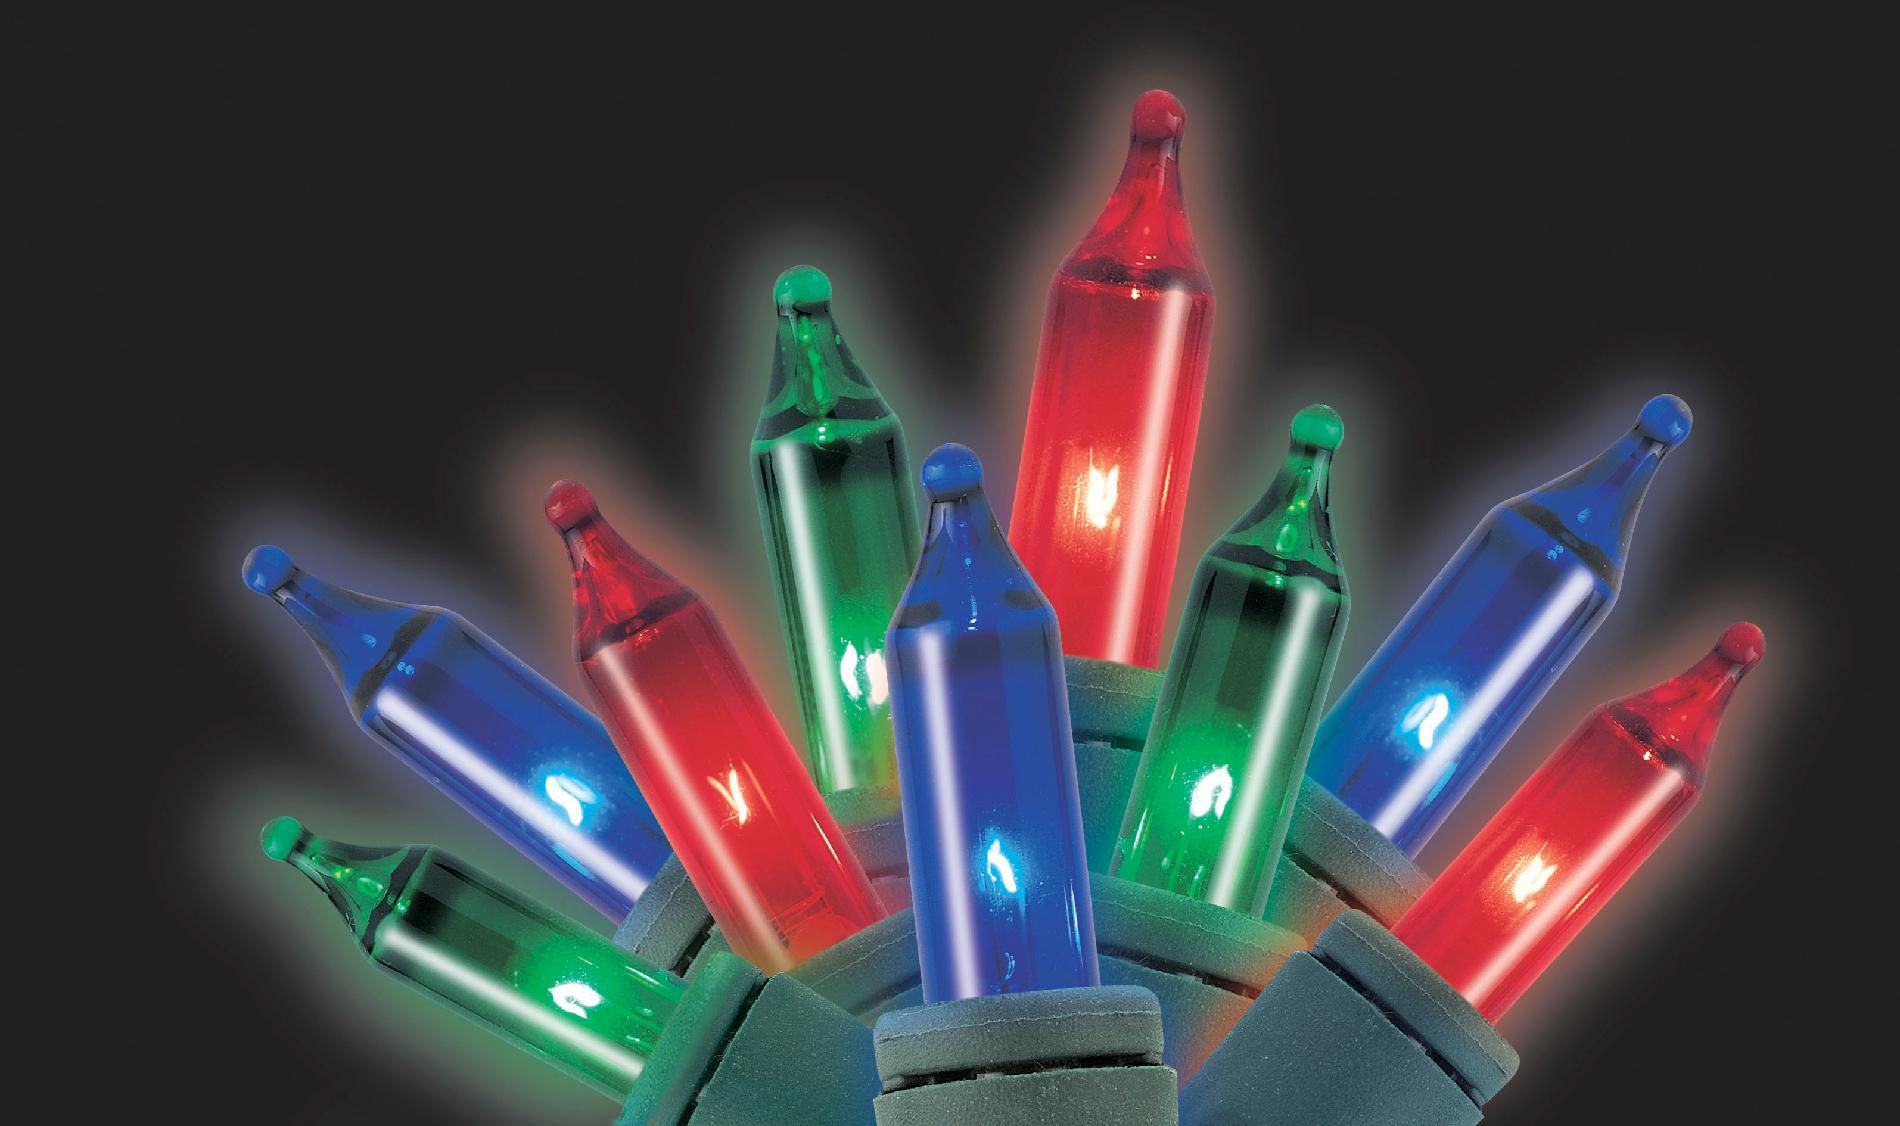 Trim A Home® Chasing Christmas Light Set - Multicolor, 140 Ct